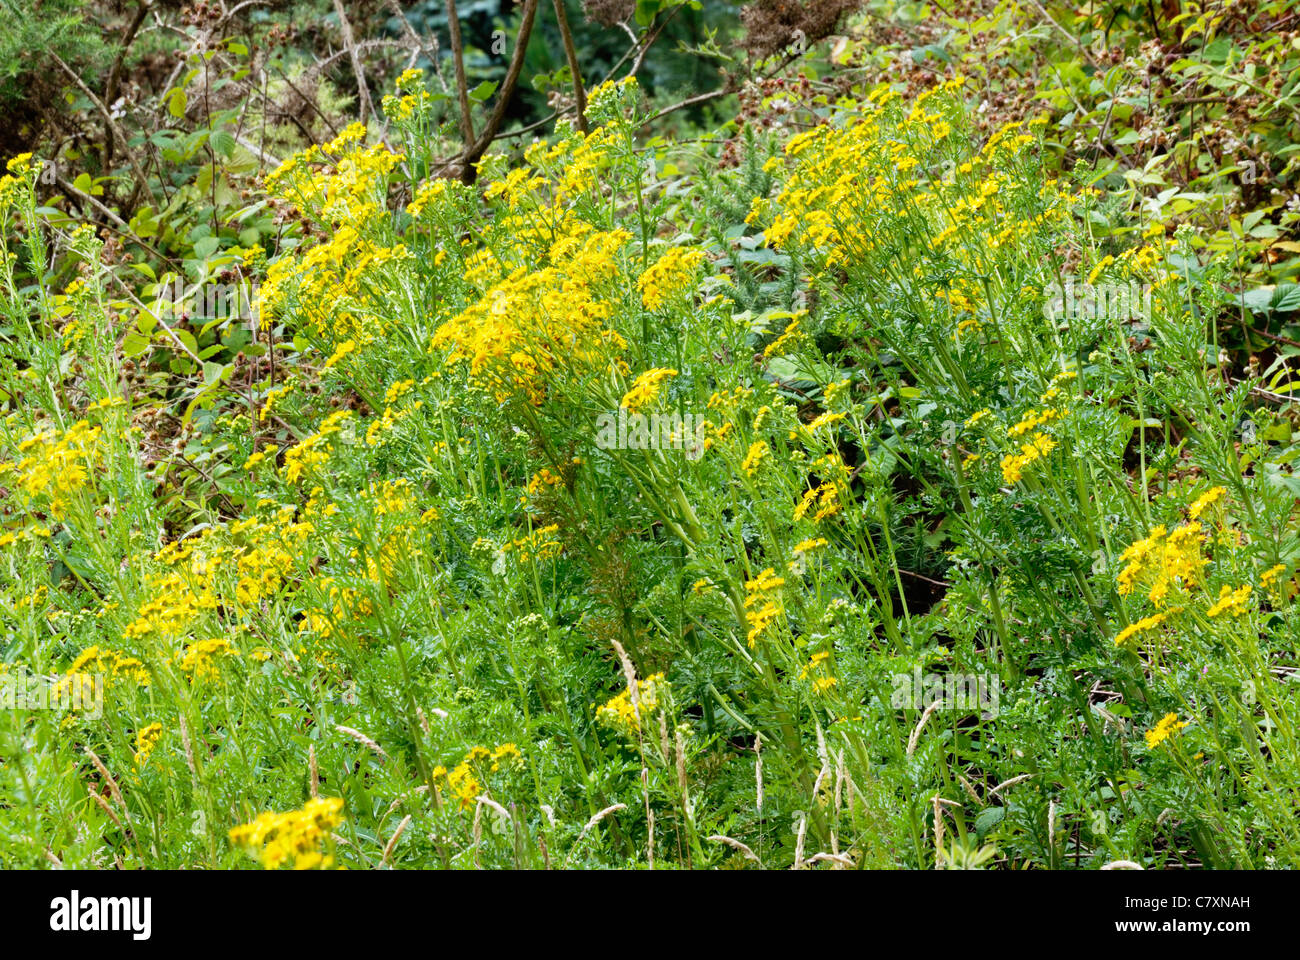 Senecio jacobaea yellow flower flowers poisonous plant plants stock senecio jacobaea ragwort flowers wales stock image mightylinksfo